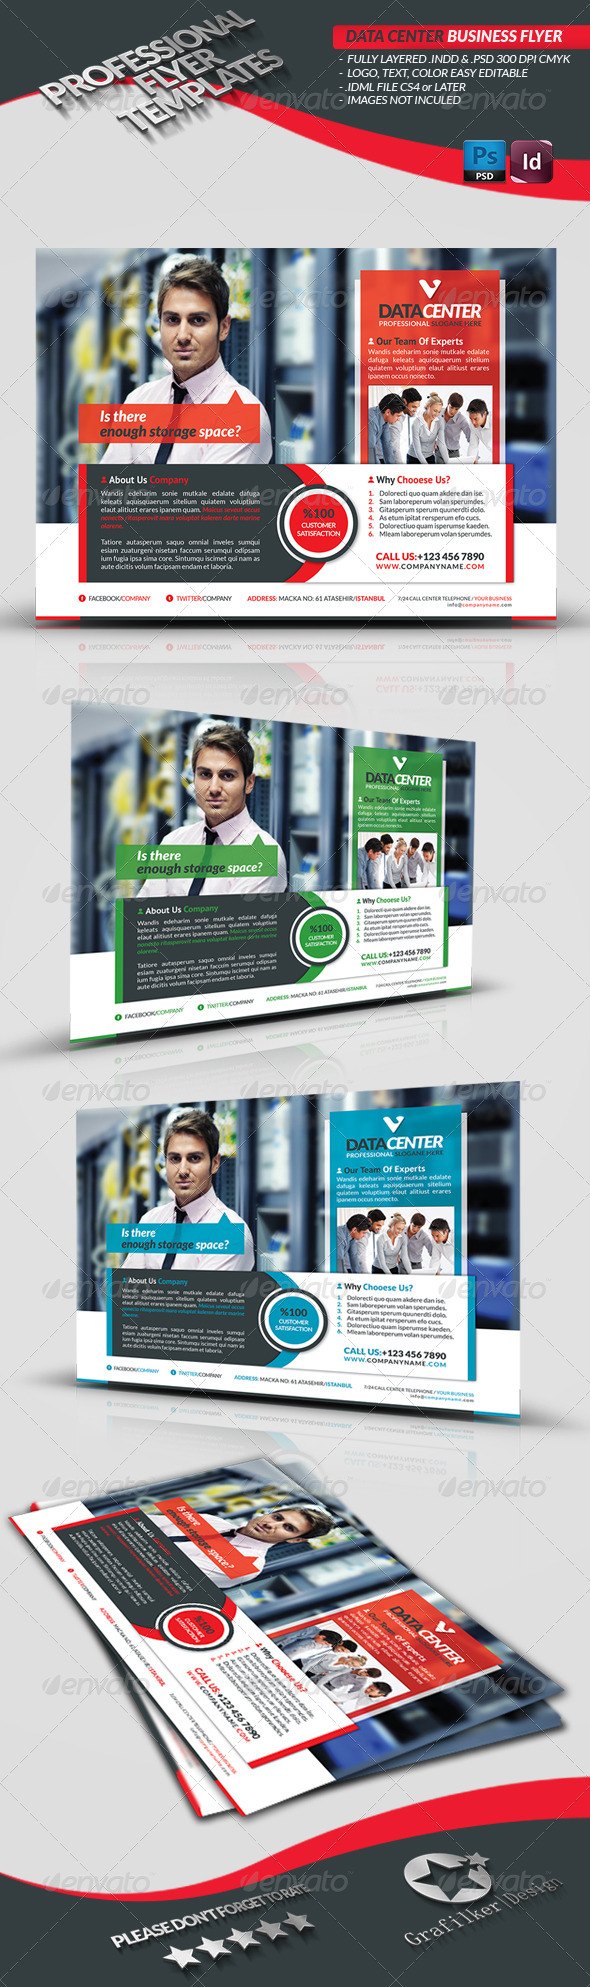 GraphicRiver Data Center Business Flyer 3666904